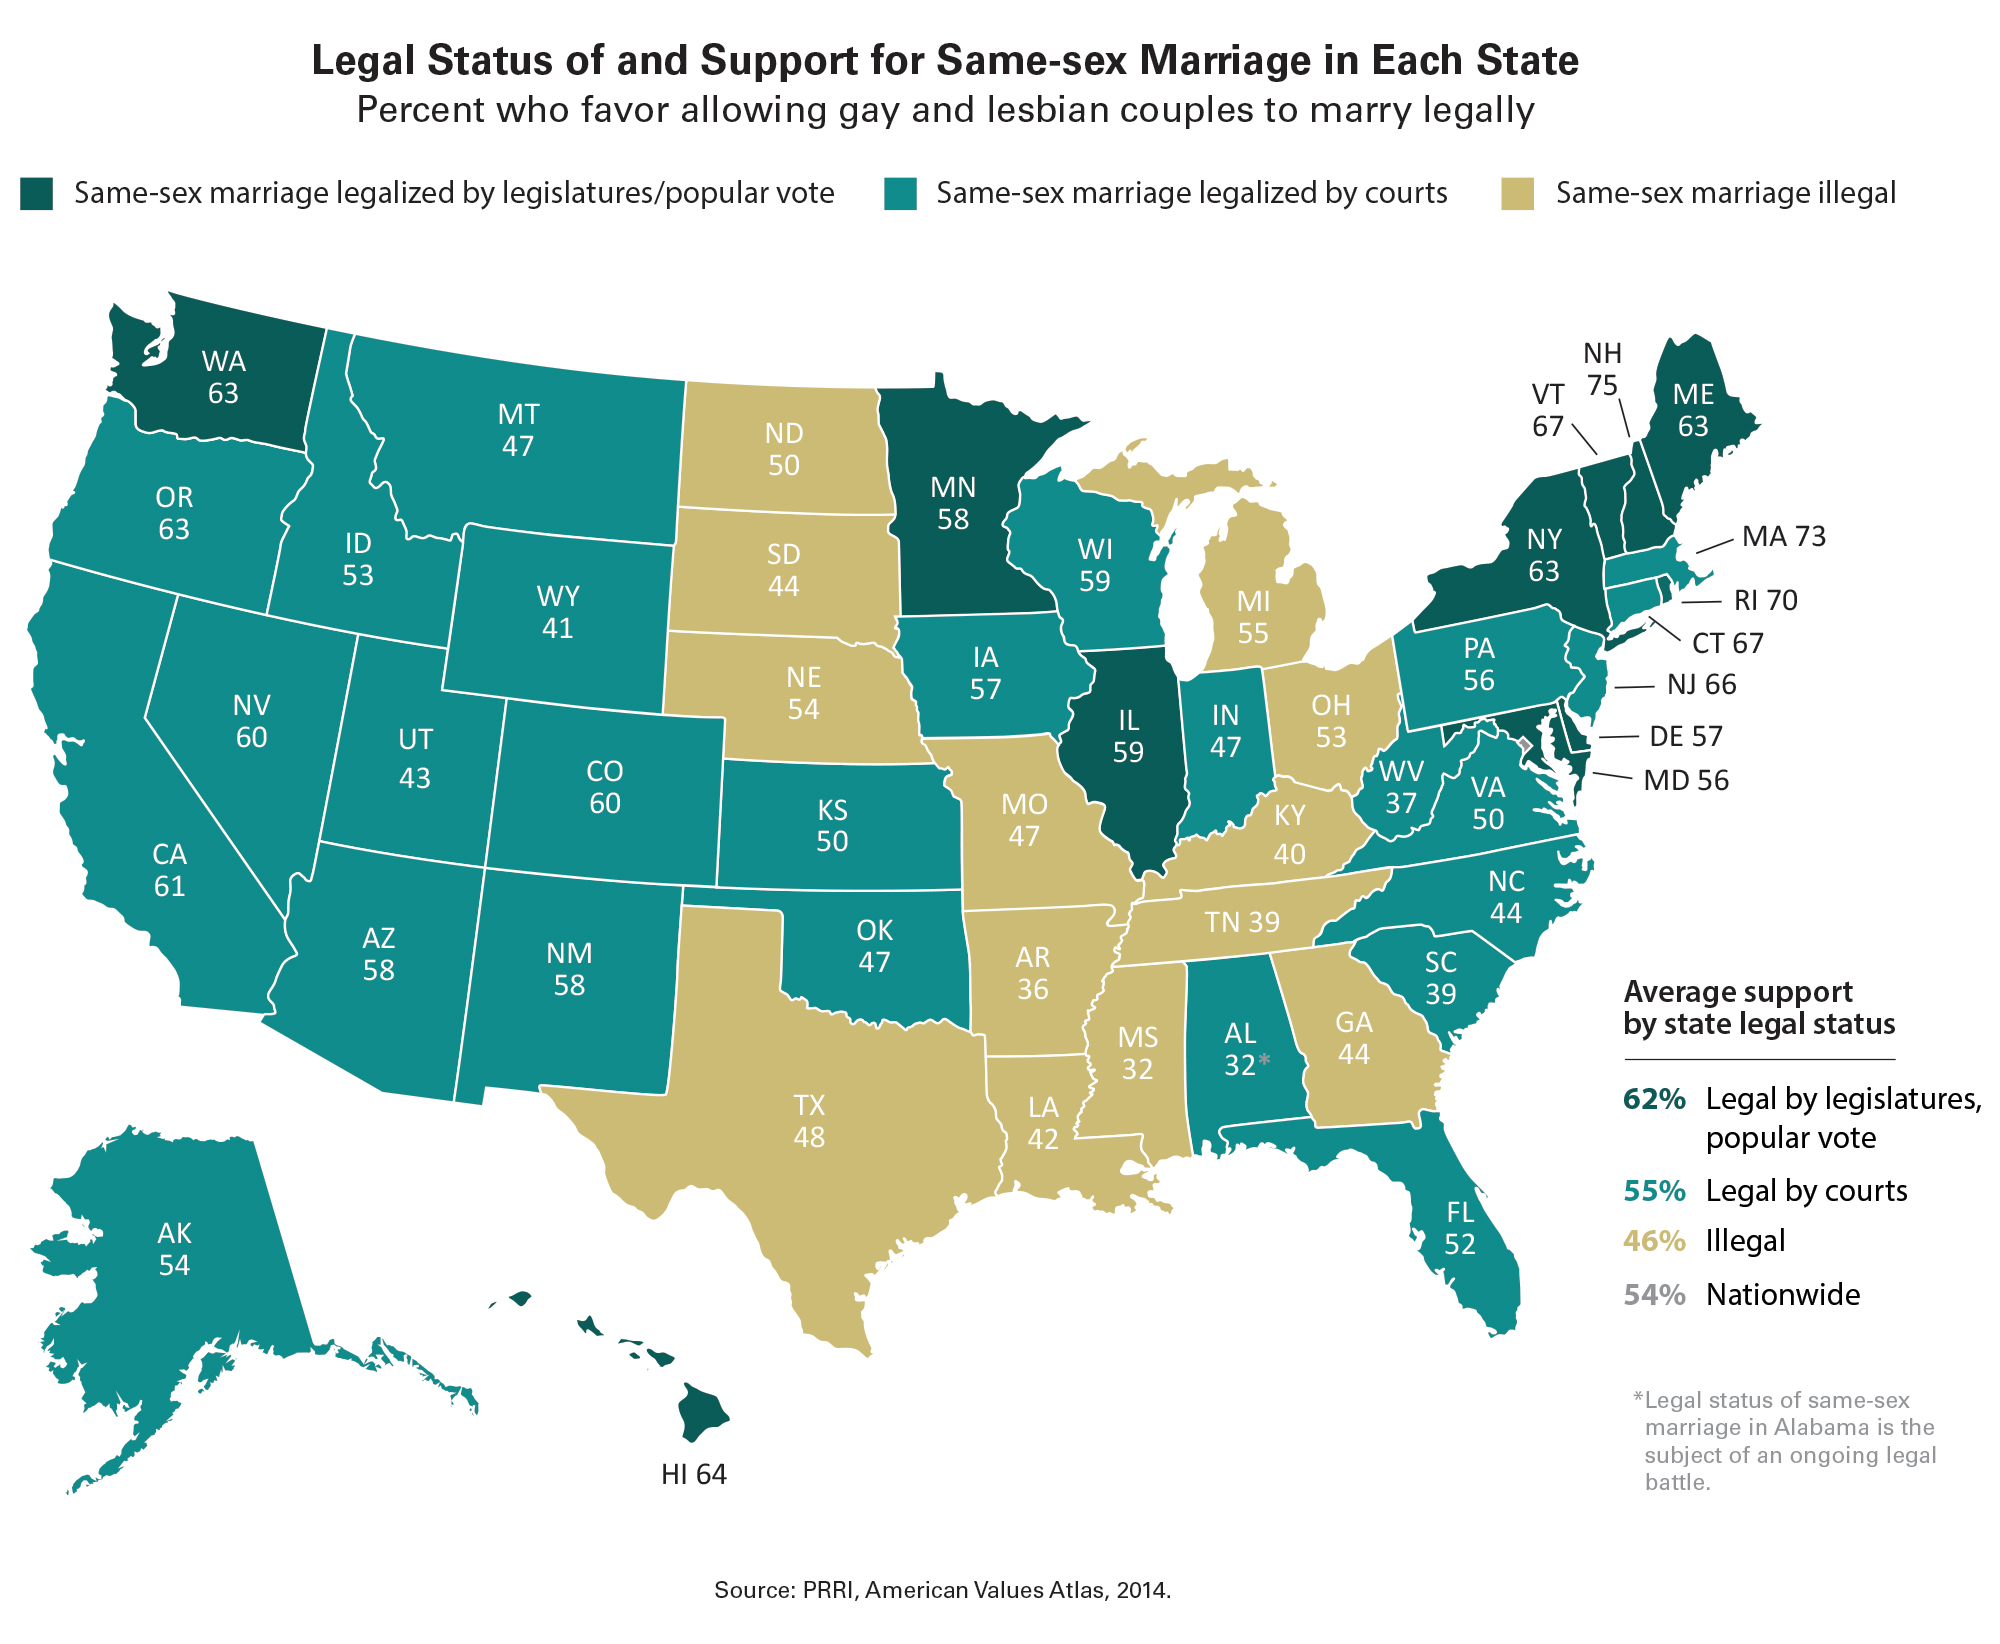 PRRI Marriage Legal Map on addiction map, 9gag map, love wins map, doctrine map, middle class map, inbreeding map, food issues map, lawyers map, birth control map, long trip map, modernism map, sovereignty map, new moon map, heredity map, stages of life map, metaphysical map, numerology map, life calling map, family interaction map,